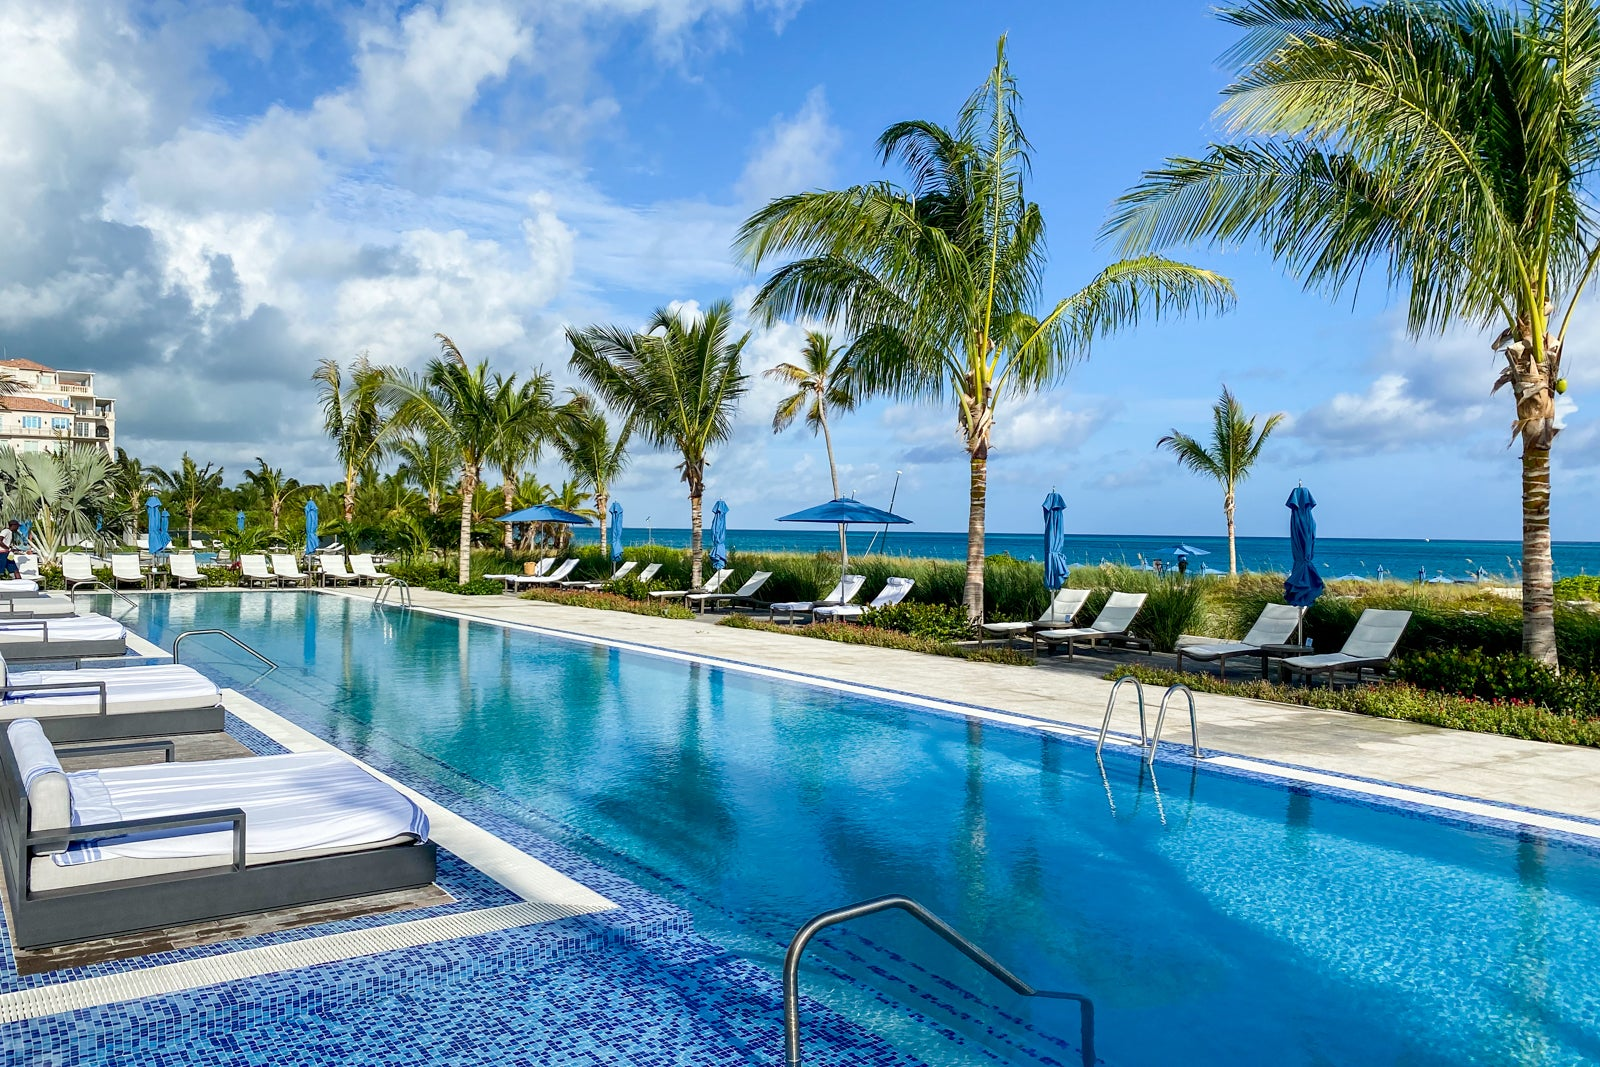 Luxury on one of the world's best beaches: A stay at The Ritz-Carlton, Turks & Caicos - The Points Guy